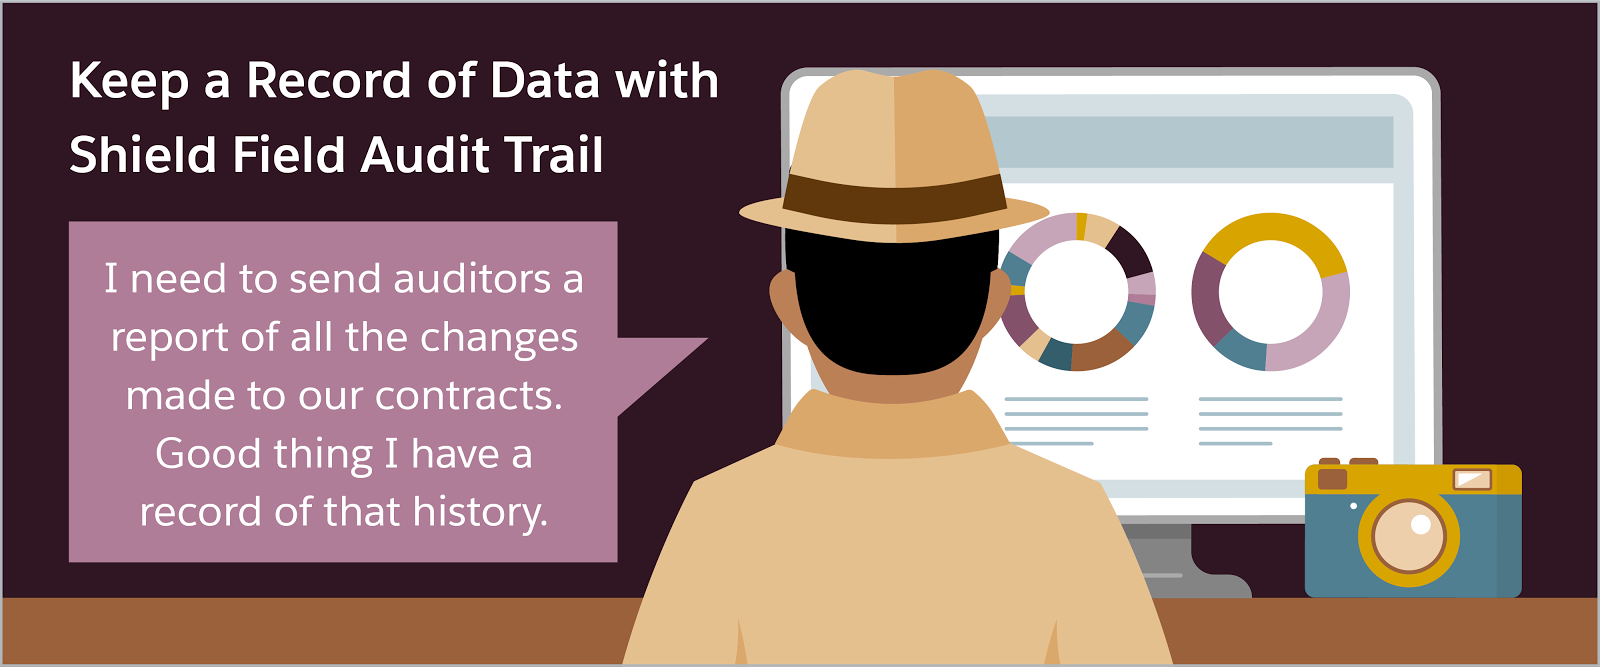 "Keep a record of data with shield field audit trail: A detective sitting in front of a computer saying, ""I need to send auditors a report of all the changes made to our contracts. Good thing I have a record of that history."""